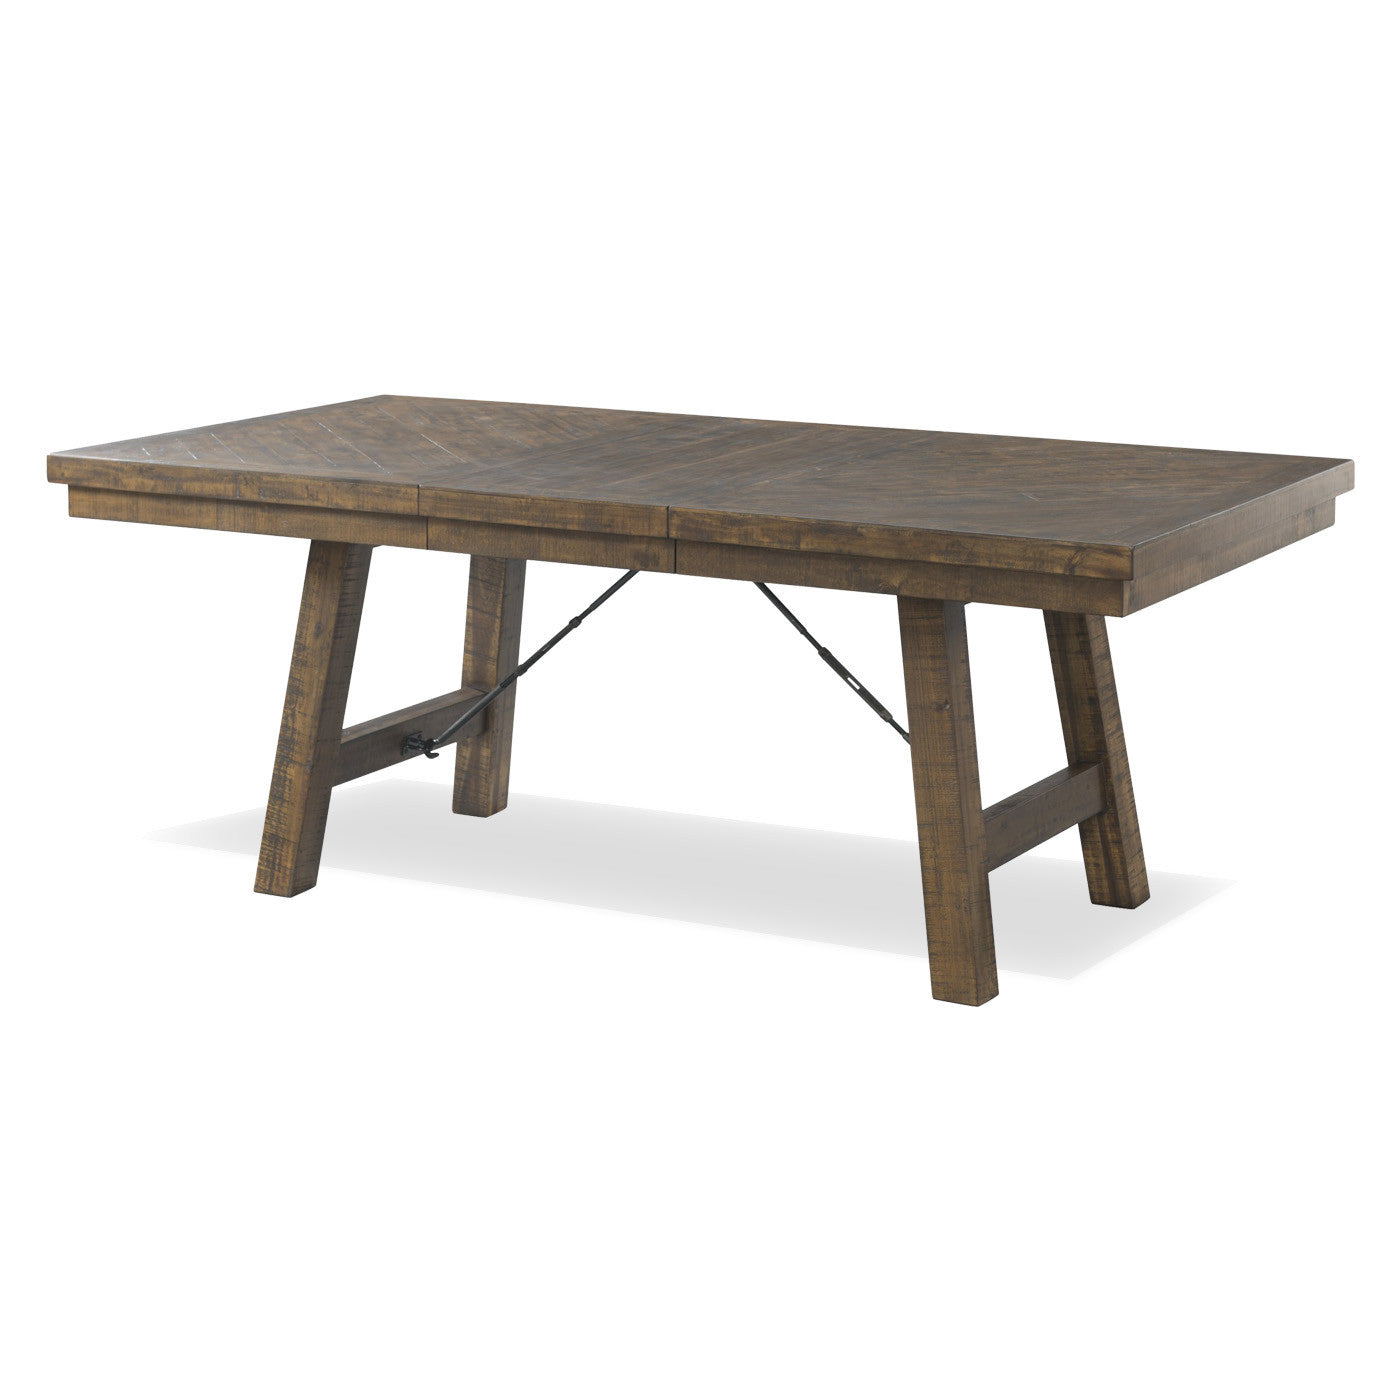 bedroomexciting small dining tables mariposa valley farm. mariposa extendable dining table walnut bedroomexciting small tables valley farm